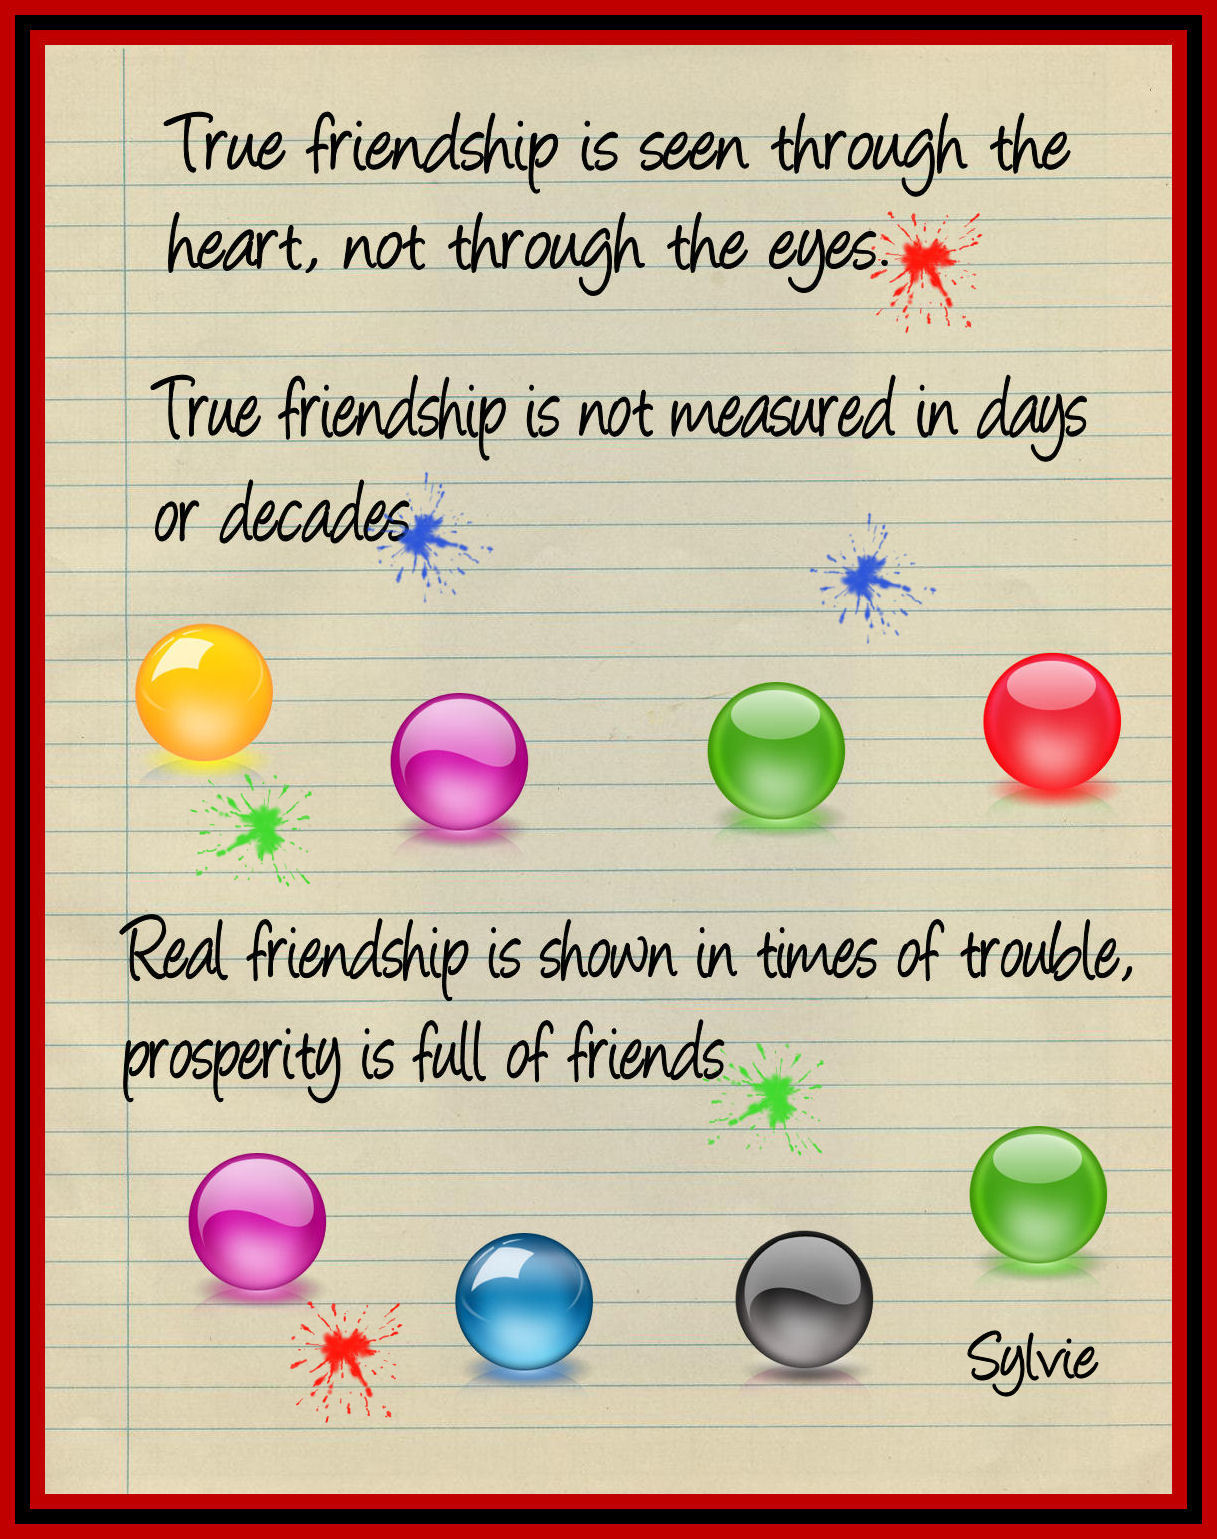 Friendship quote #1